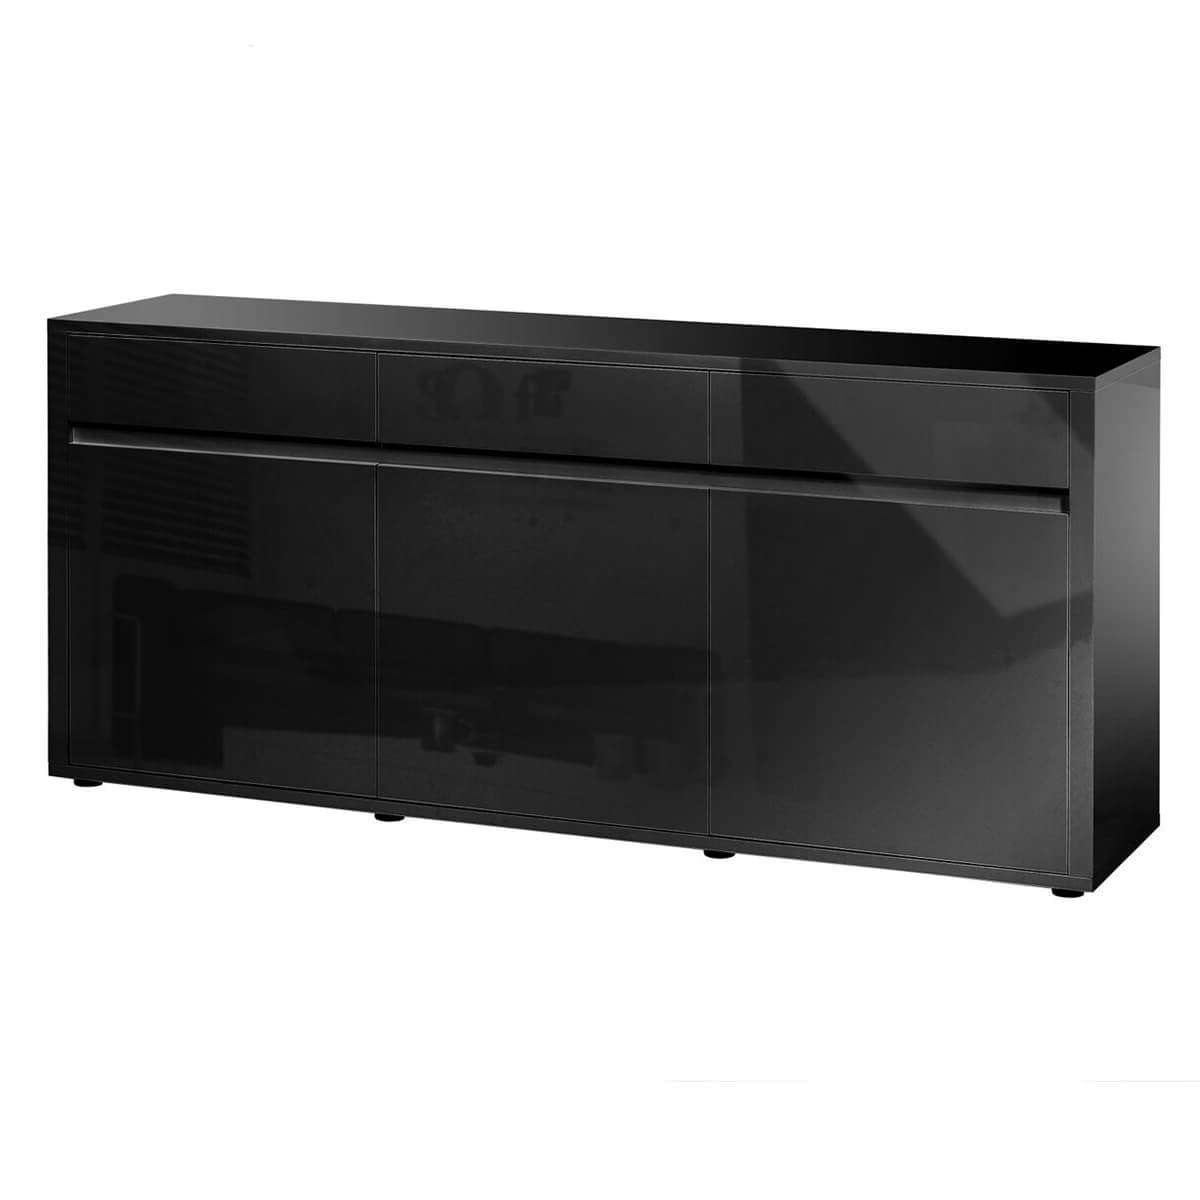 Urbana Black High Gloss Sideboard 3 Door 3 Drawer | Fads Regarding High Gloss Sideboards (View 19 of 20)